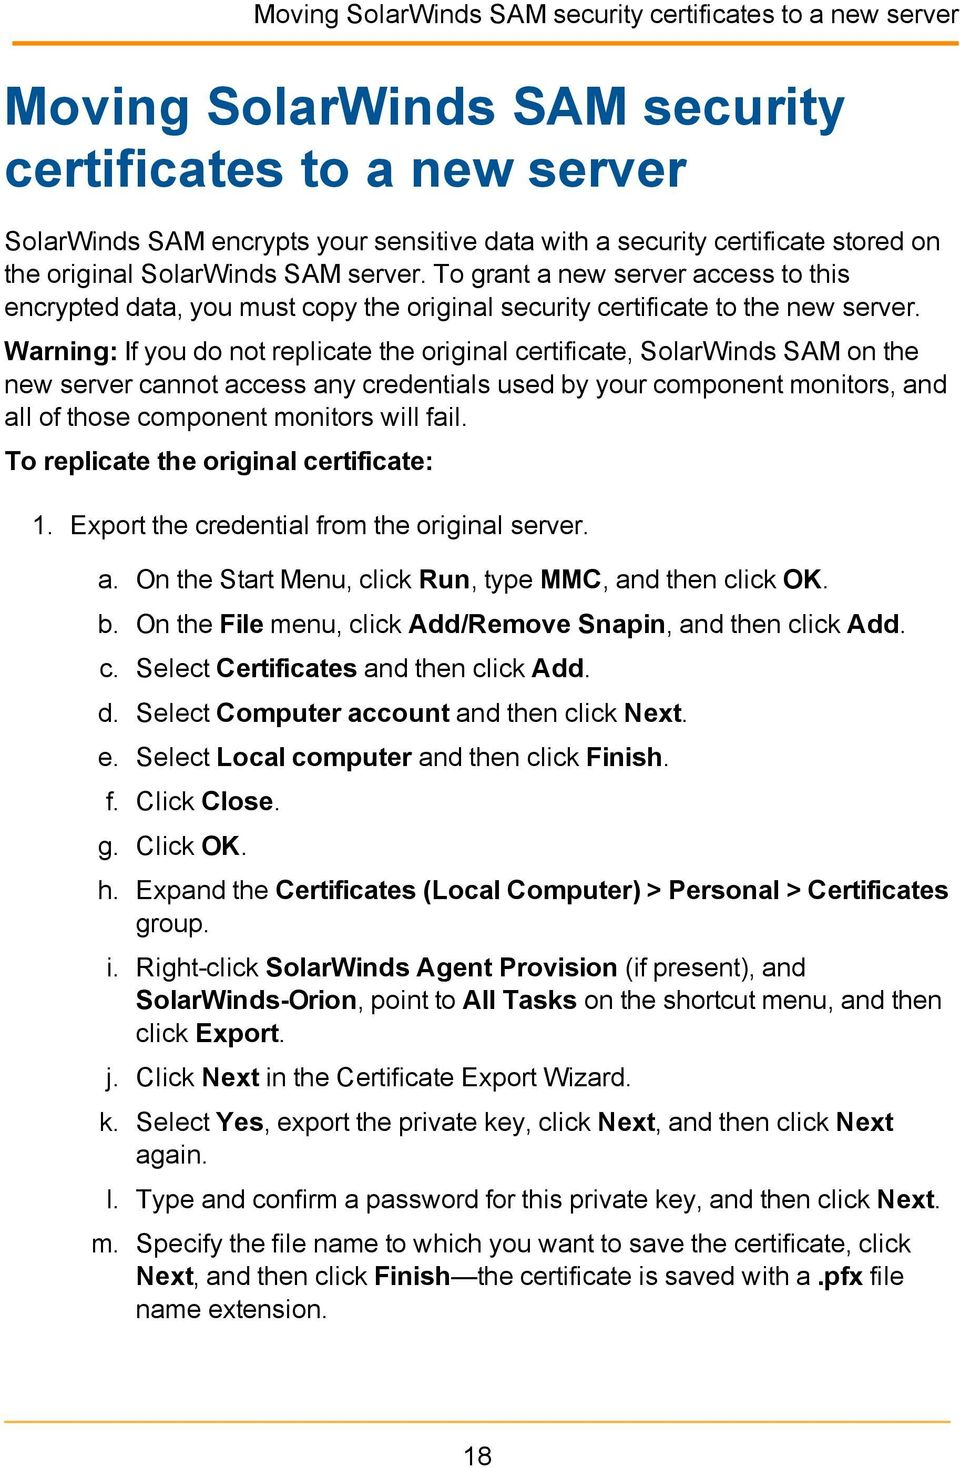 Warning: If you do not replicate the original certificate, SolarWinds SAM on the new server cannot access any credentials used by your component monitors, and all of those component monitors will